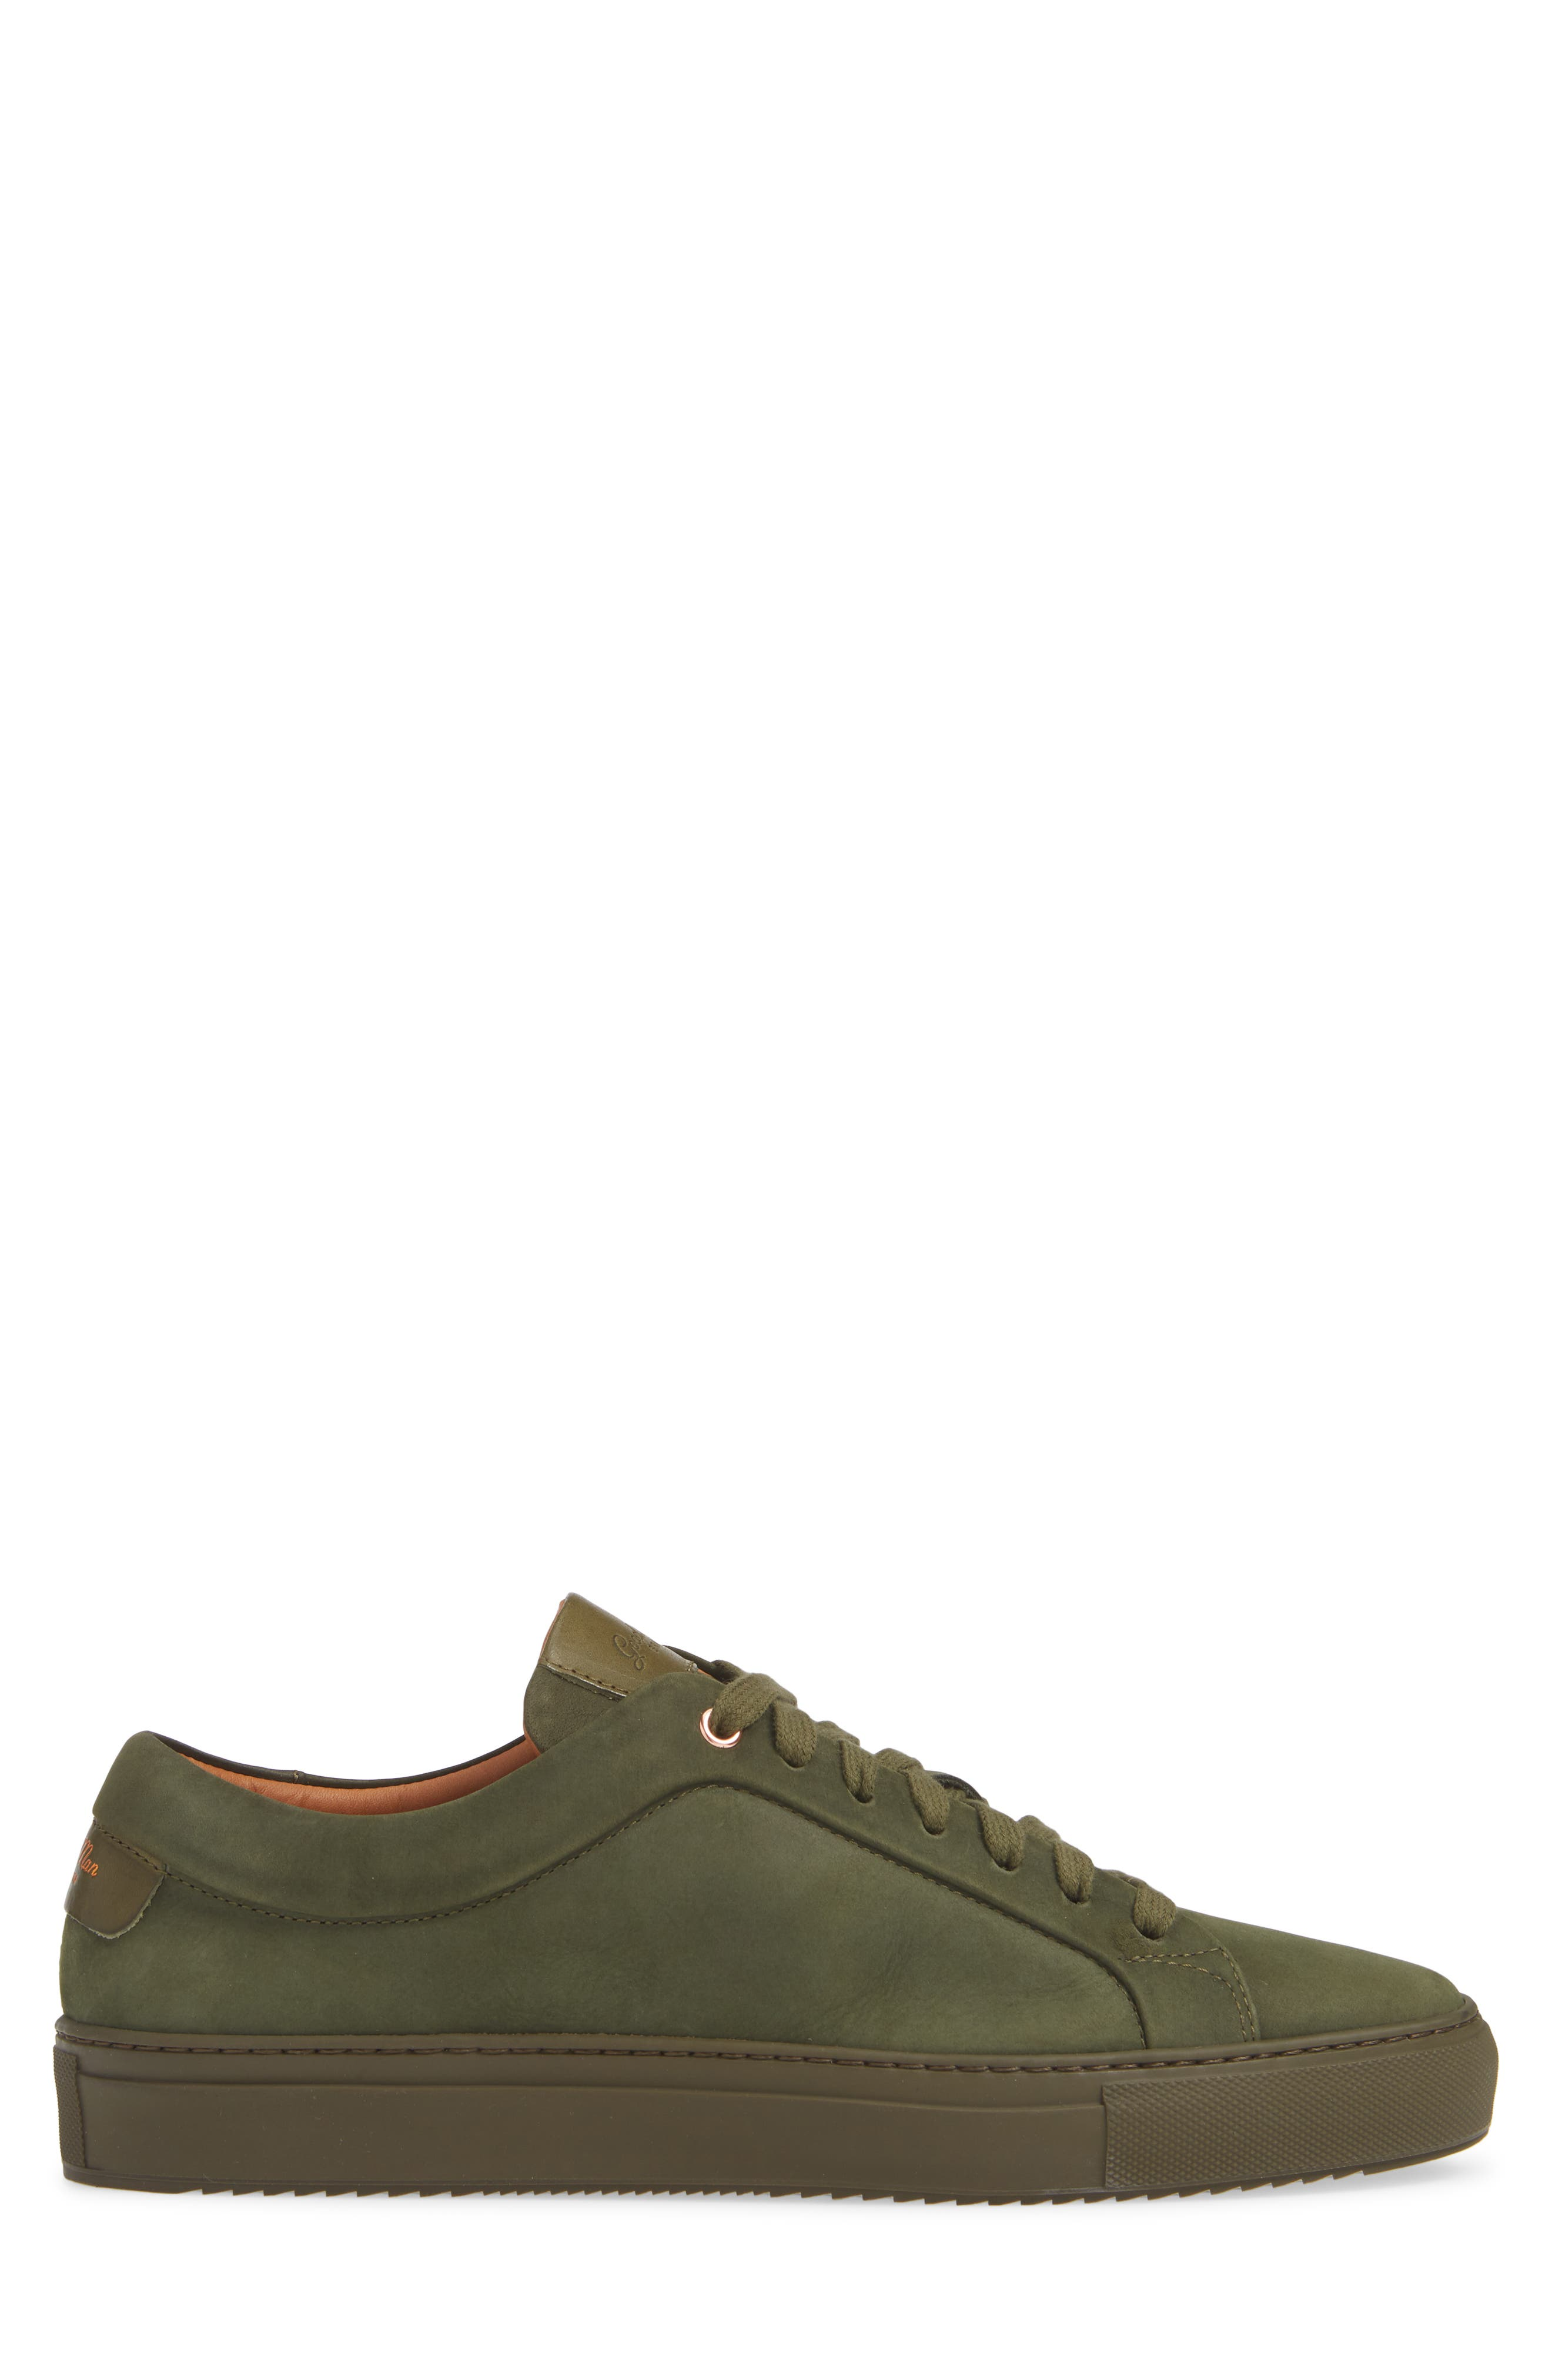 Sure Shot Lo Sneaker,                             Alternate thumbnail 3, color,                             MILITARY GREEN LEATHER